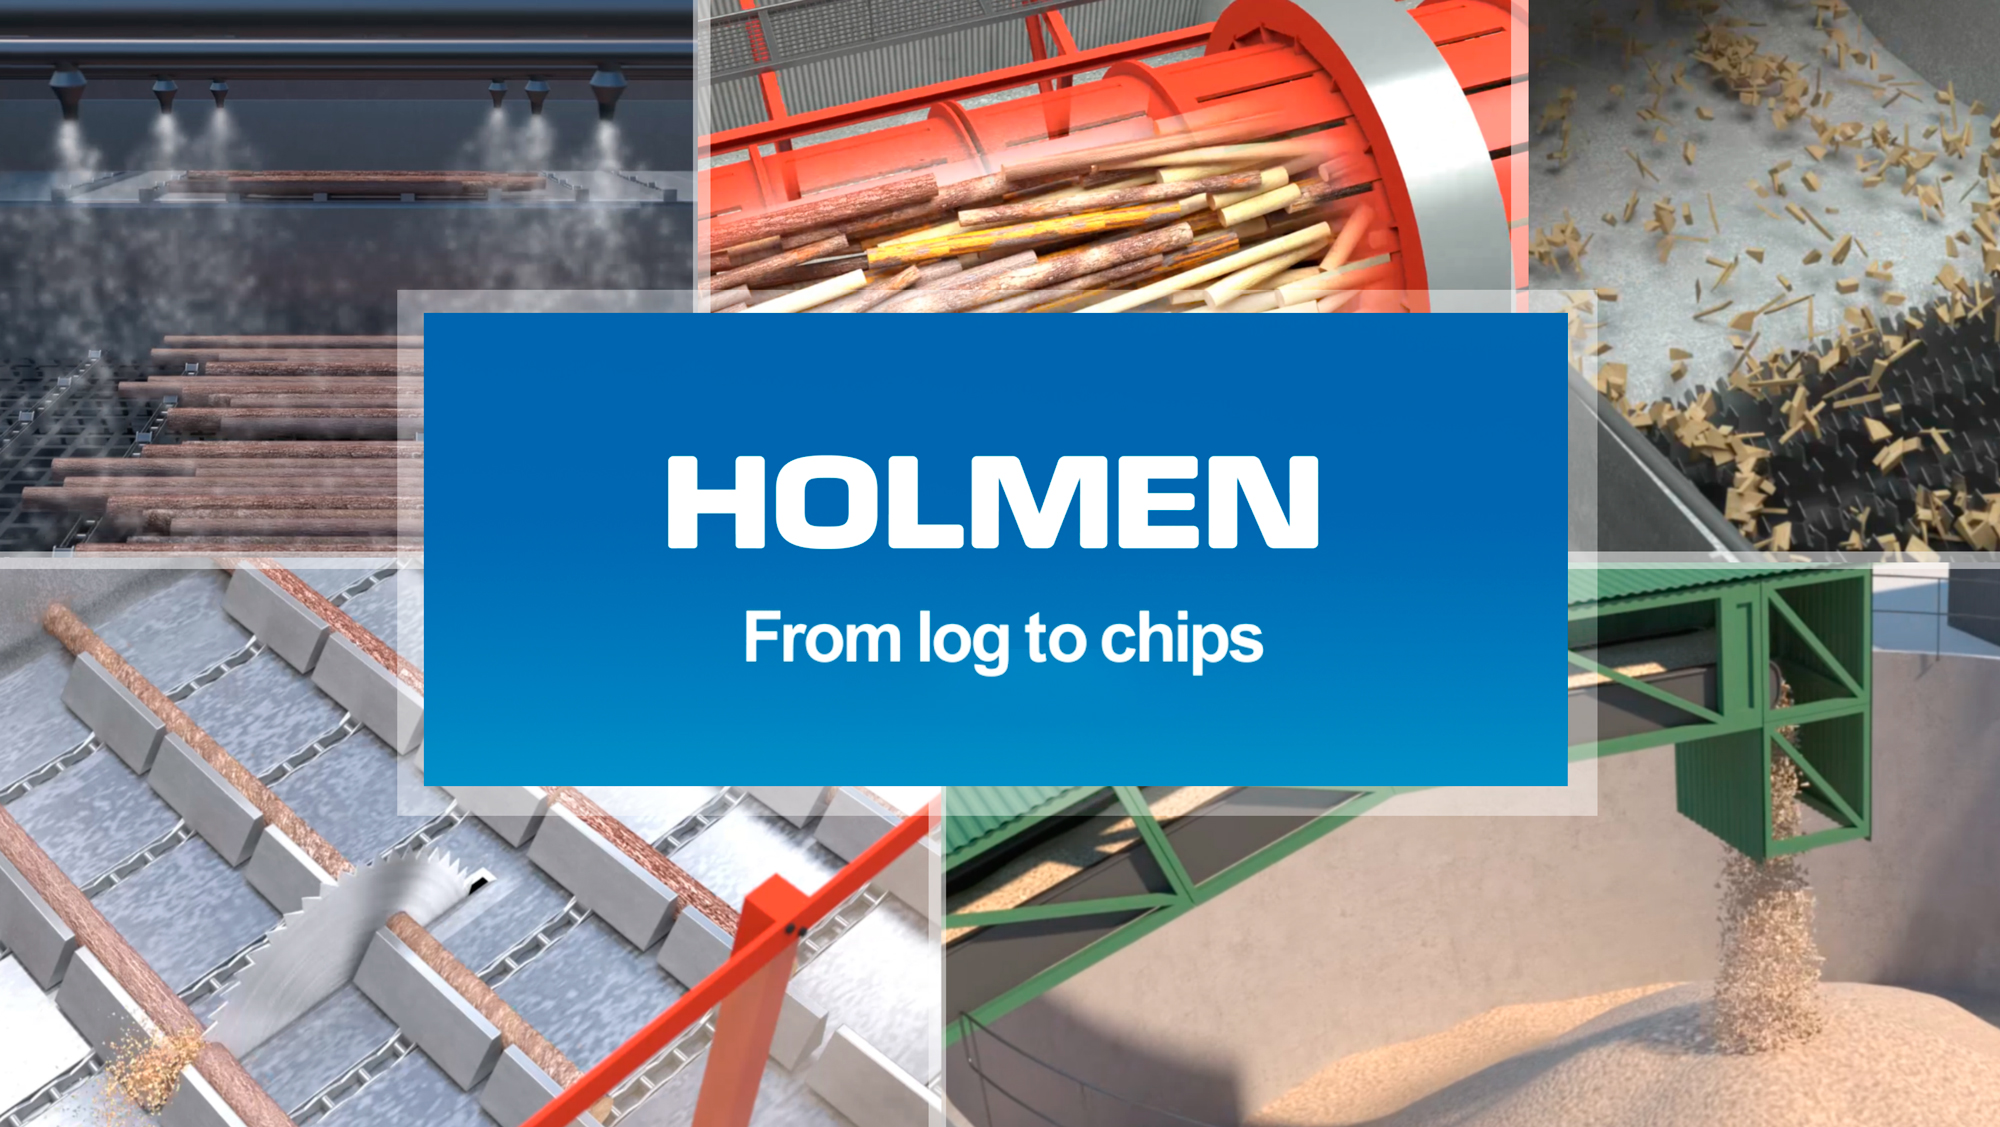 HOLMEN BRAVIKEN – From log to chips